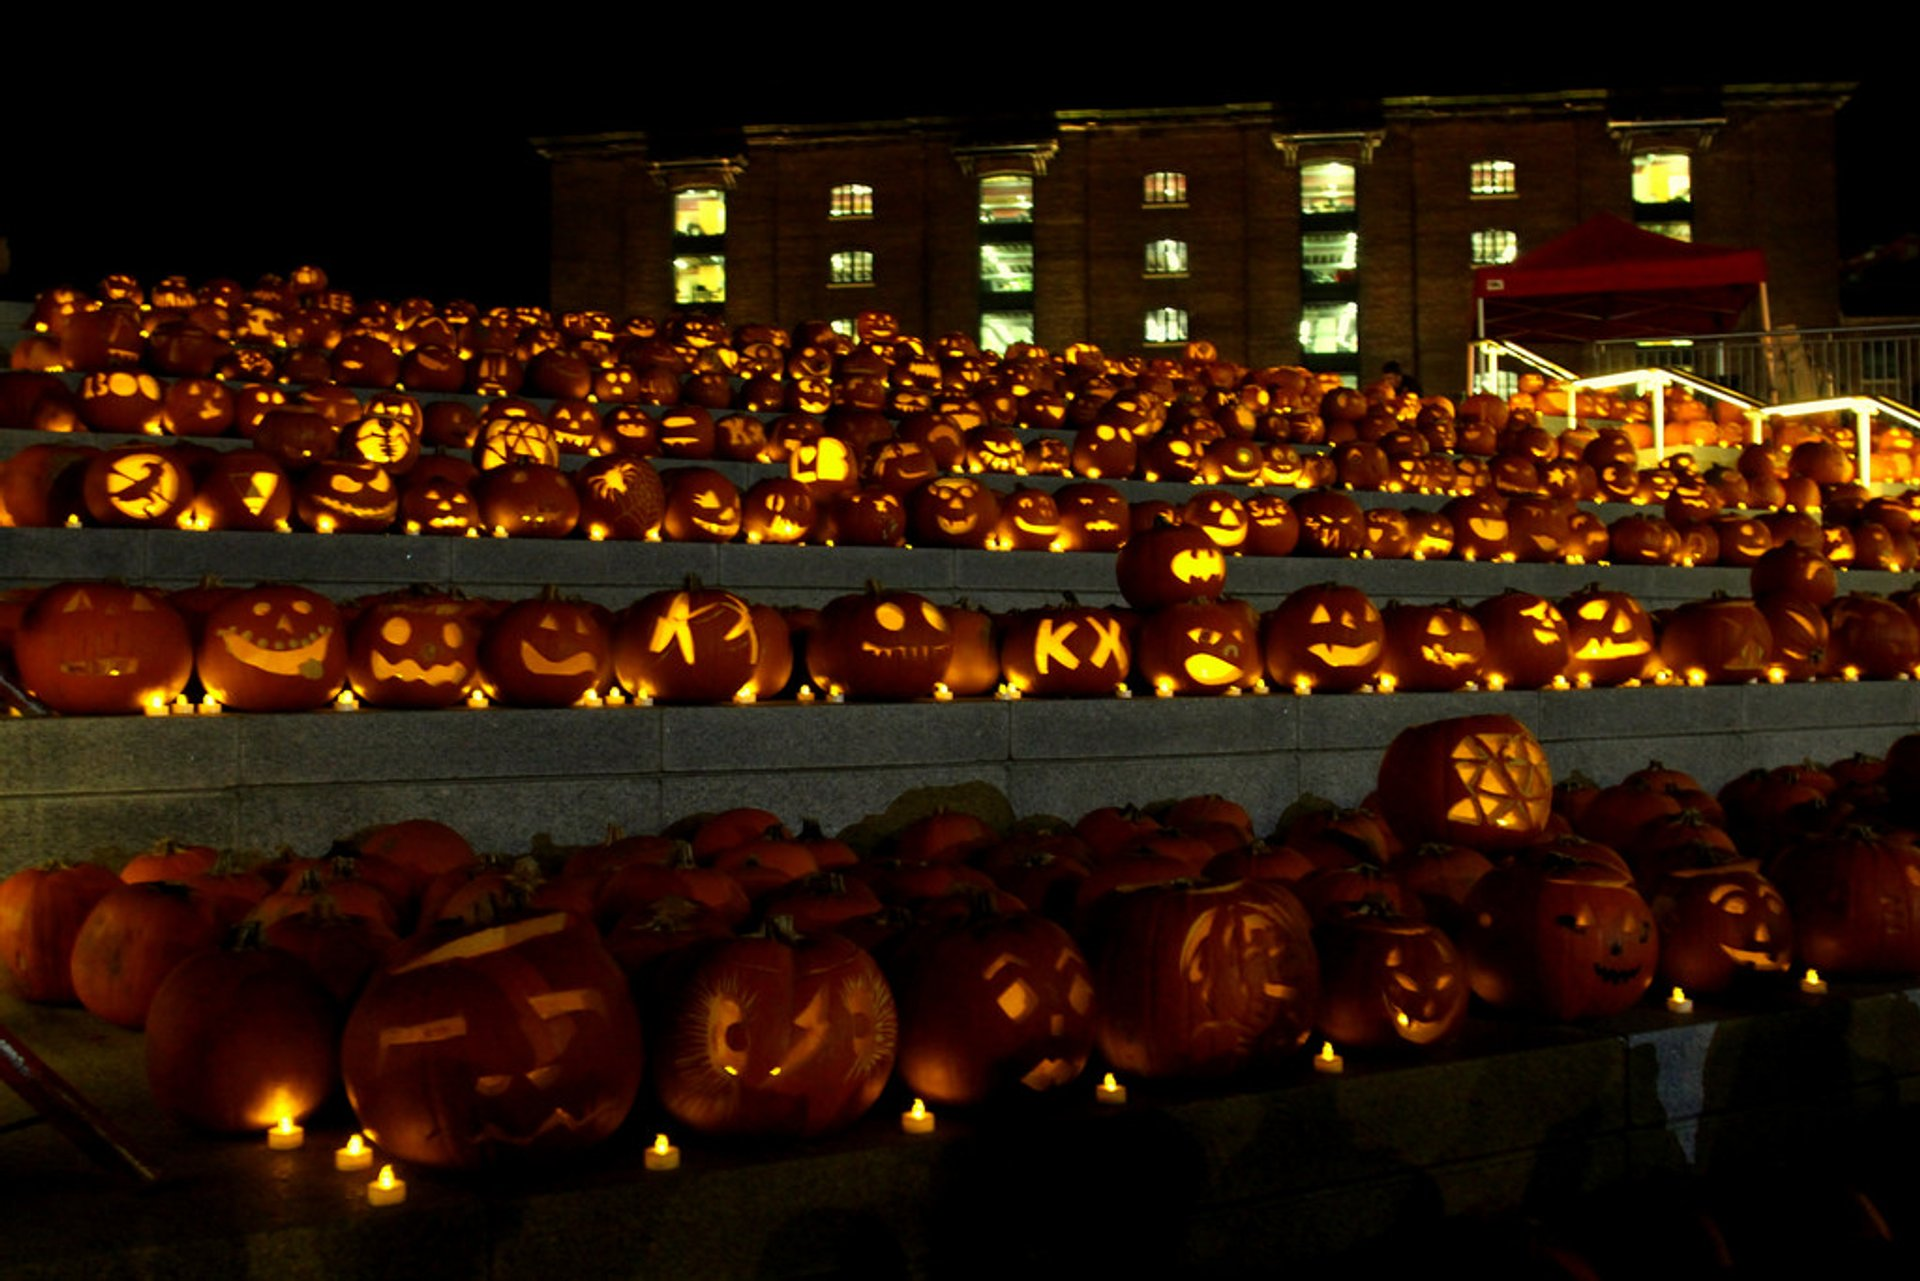 The King's Cross pumpkins by night 2020